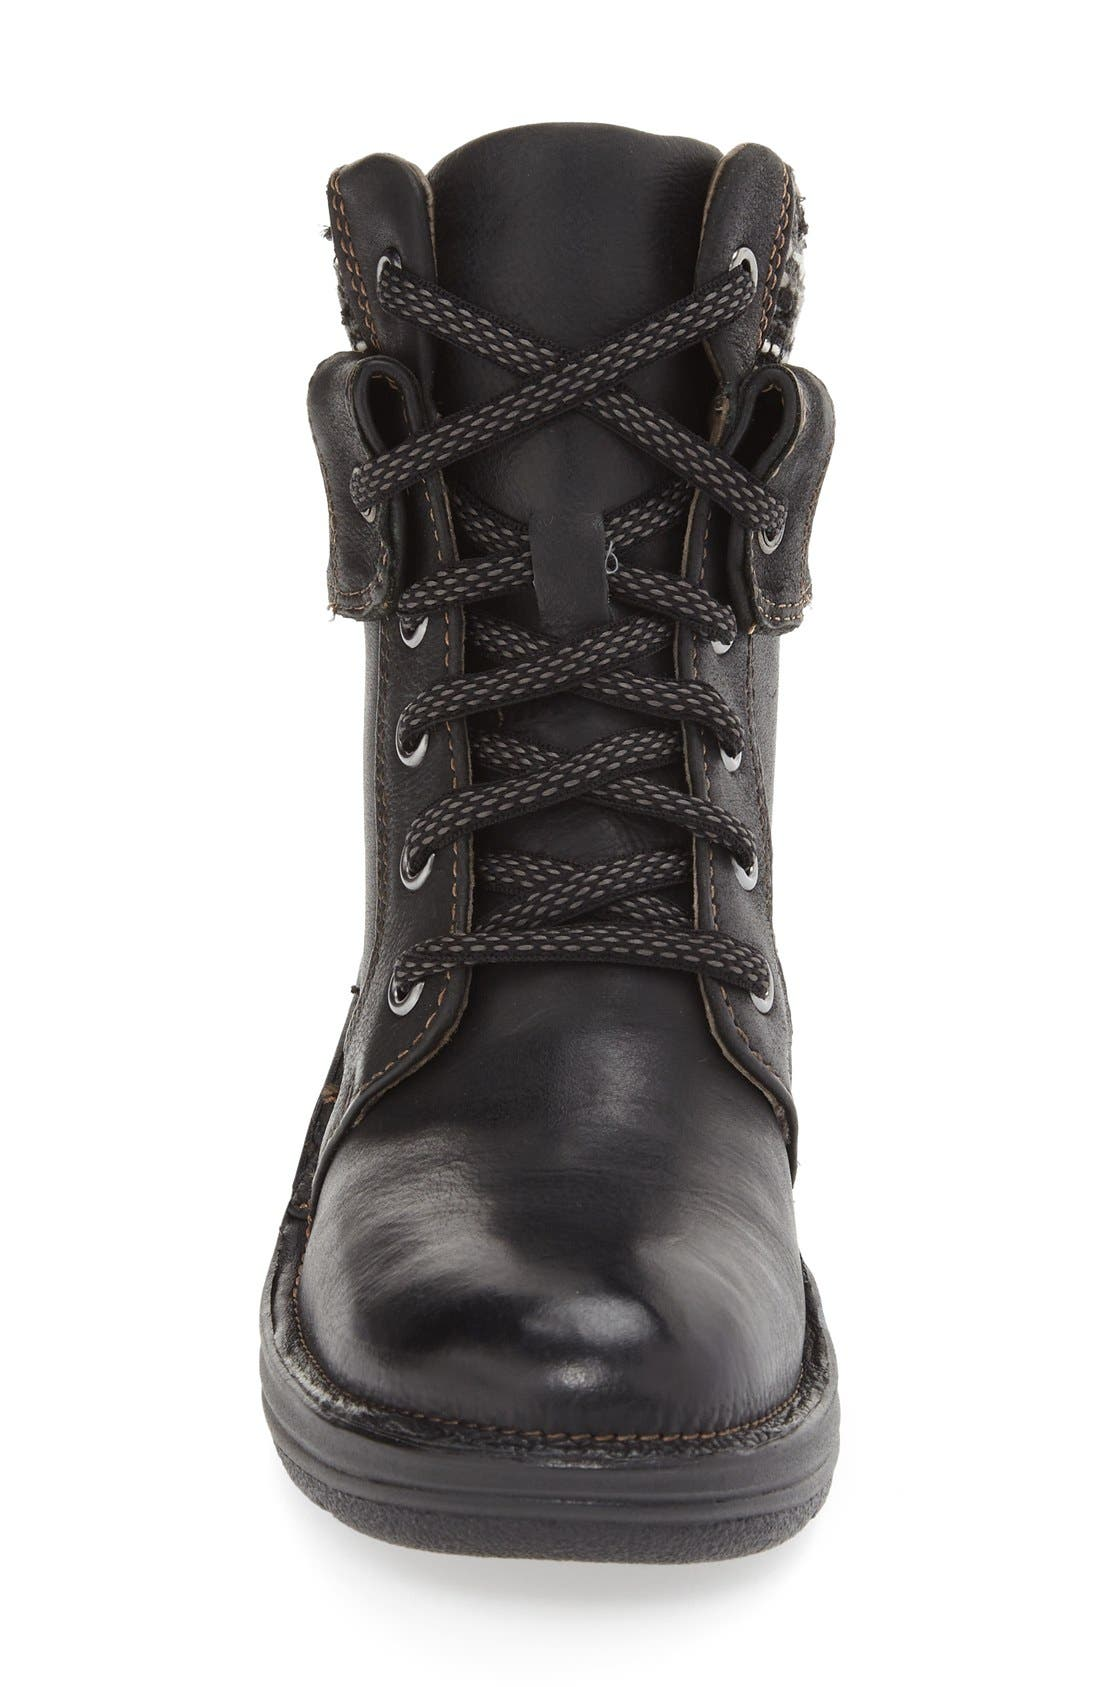 'Romulus' Boot,                             Alternate thumbnail 3, color,                             Black Leather